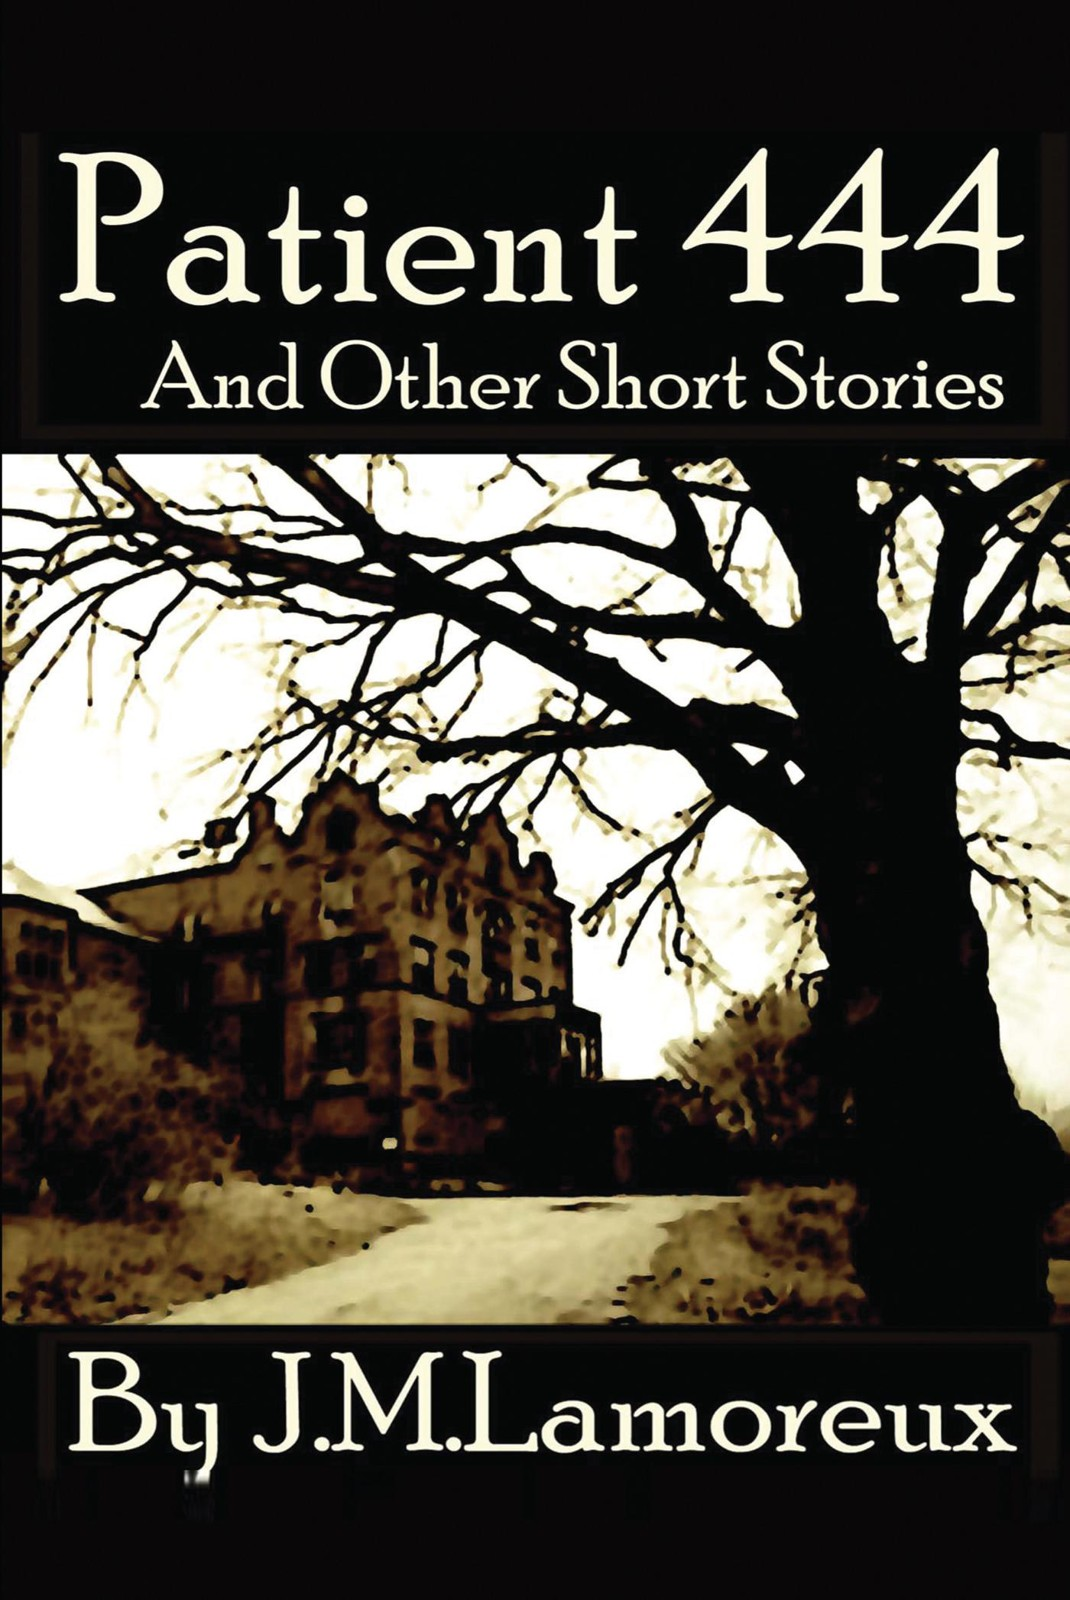 Patient 444 And Other Short Stories